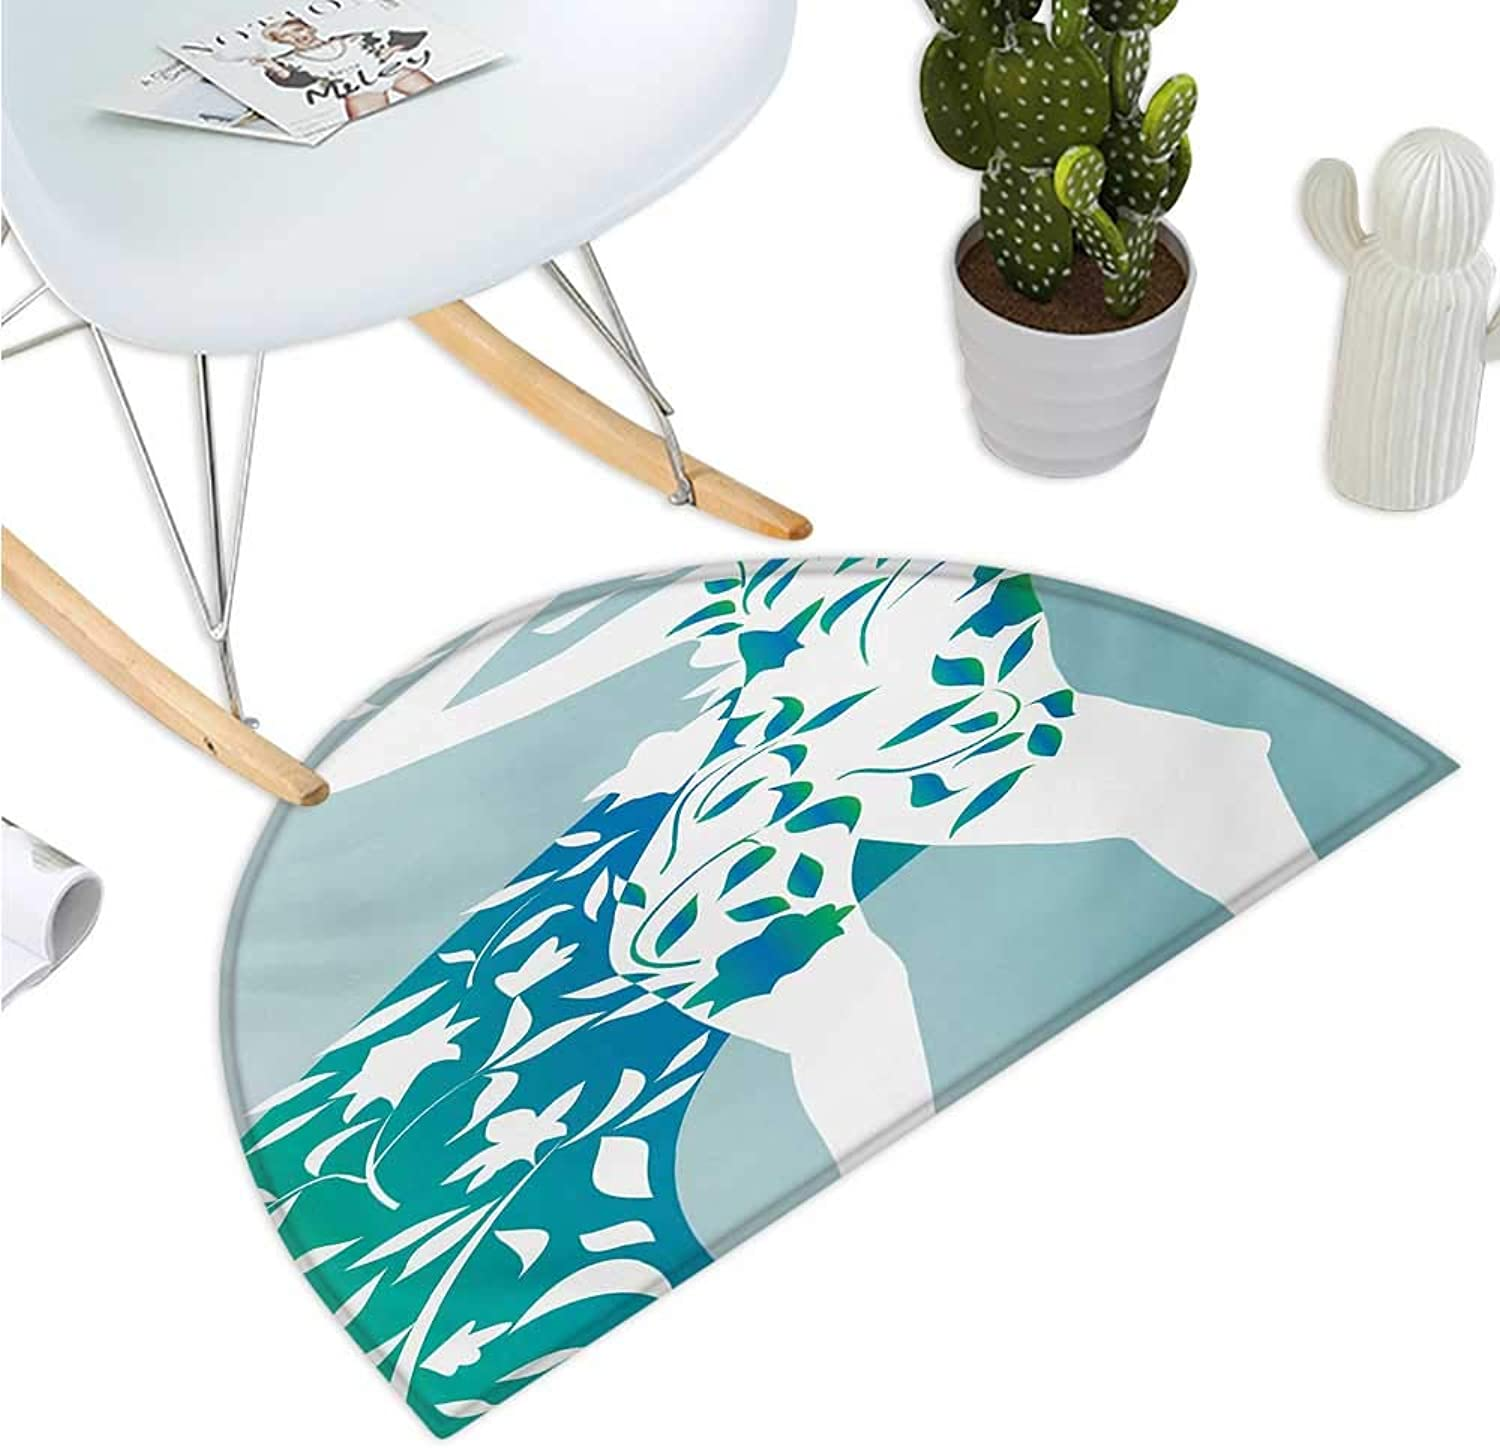 Floral Semicircular Cushion Fashion Woman Girl Body with Flower Petal Leaves Modern Design Model Image Halfmoon doormats H 35.4  xD 53.1  Turquoise Teal White